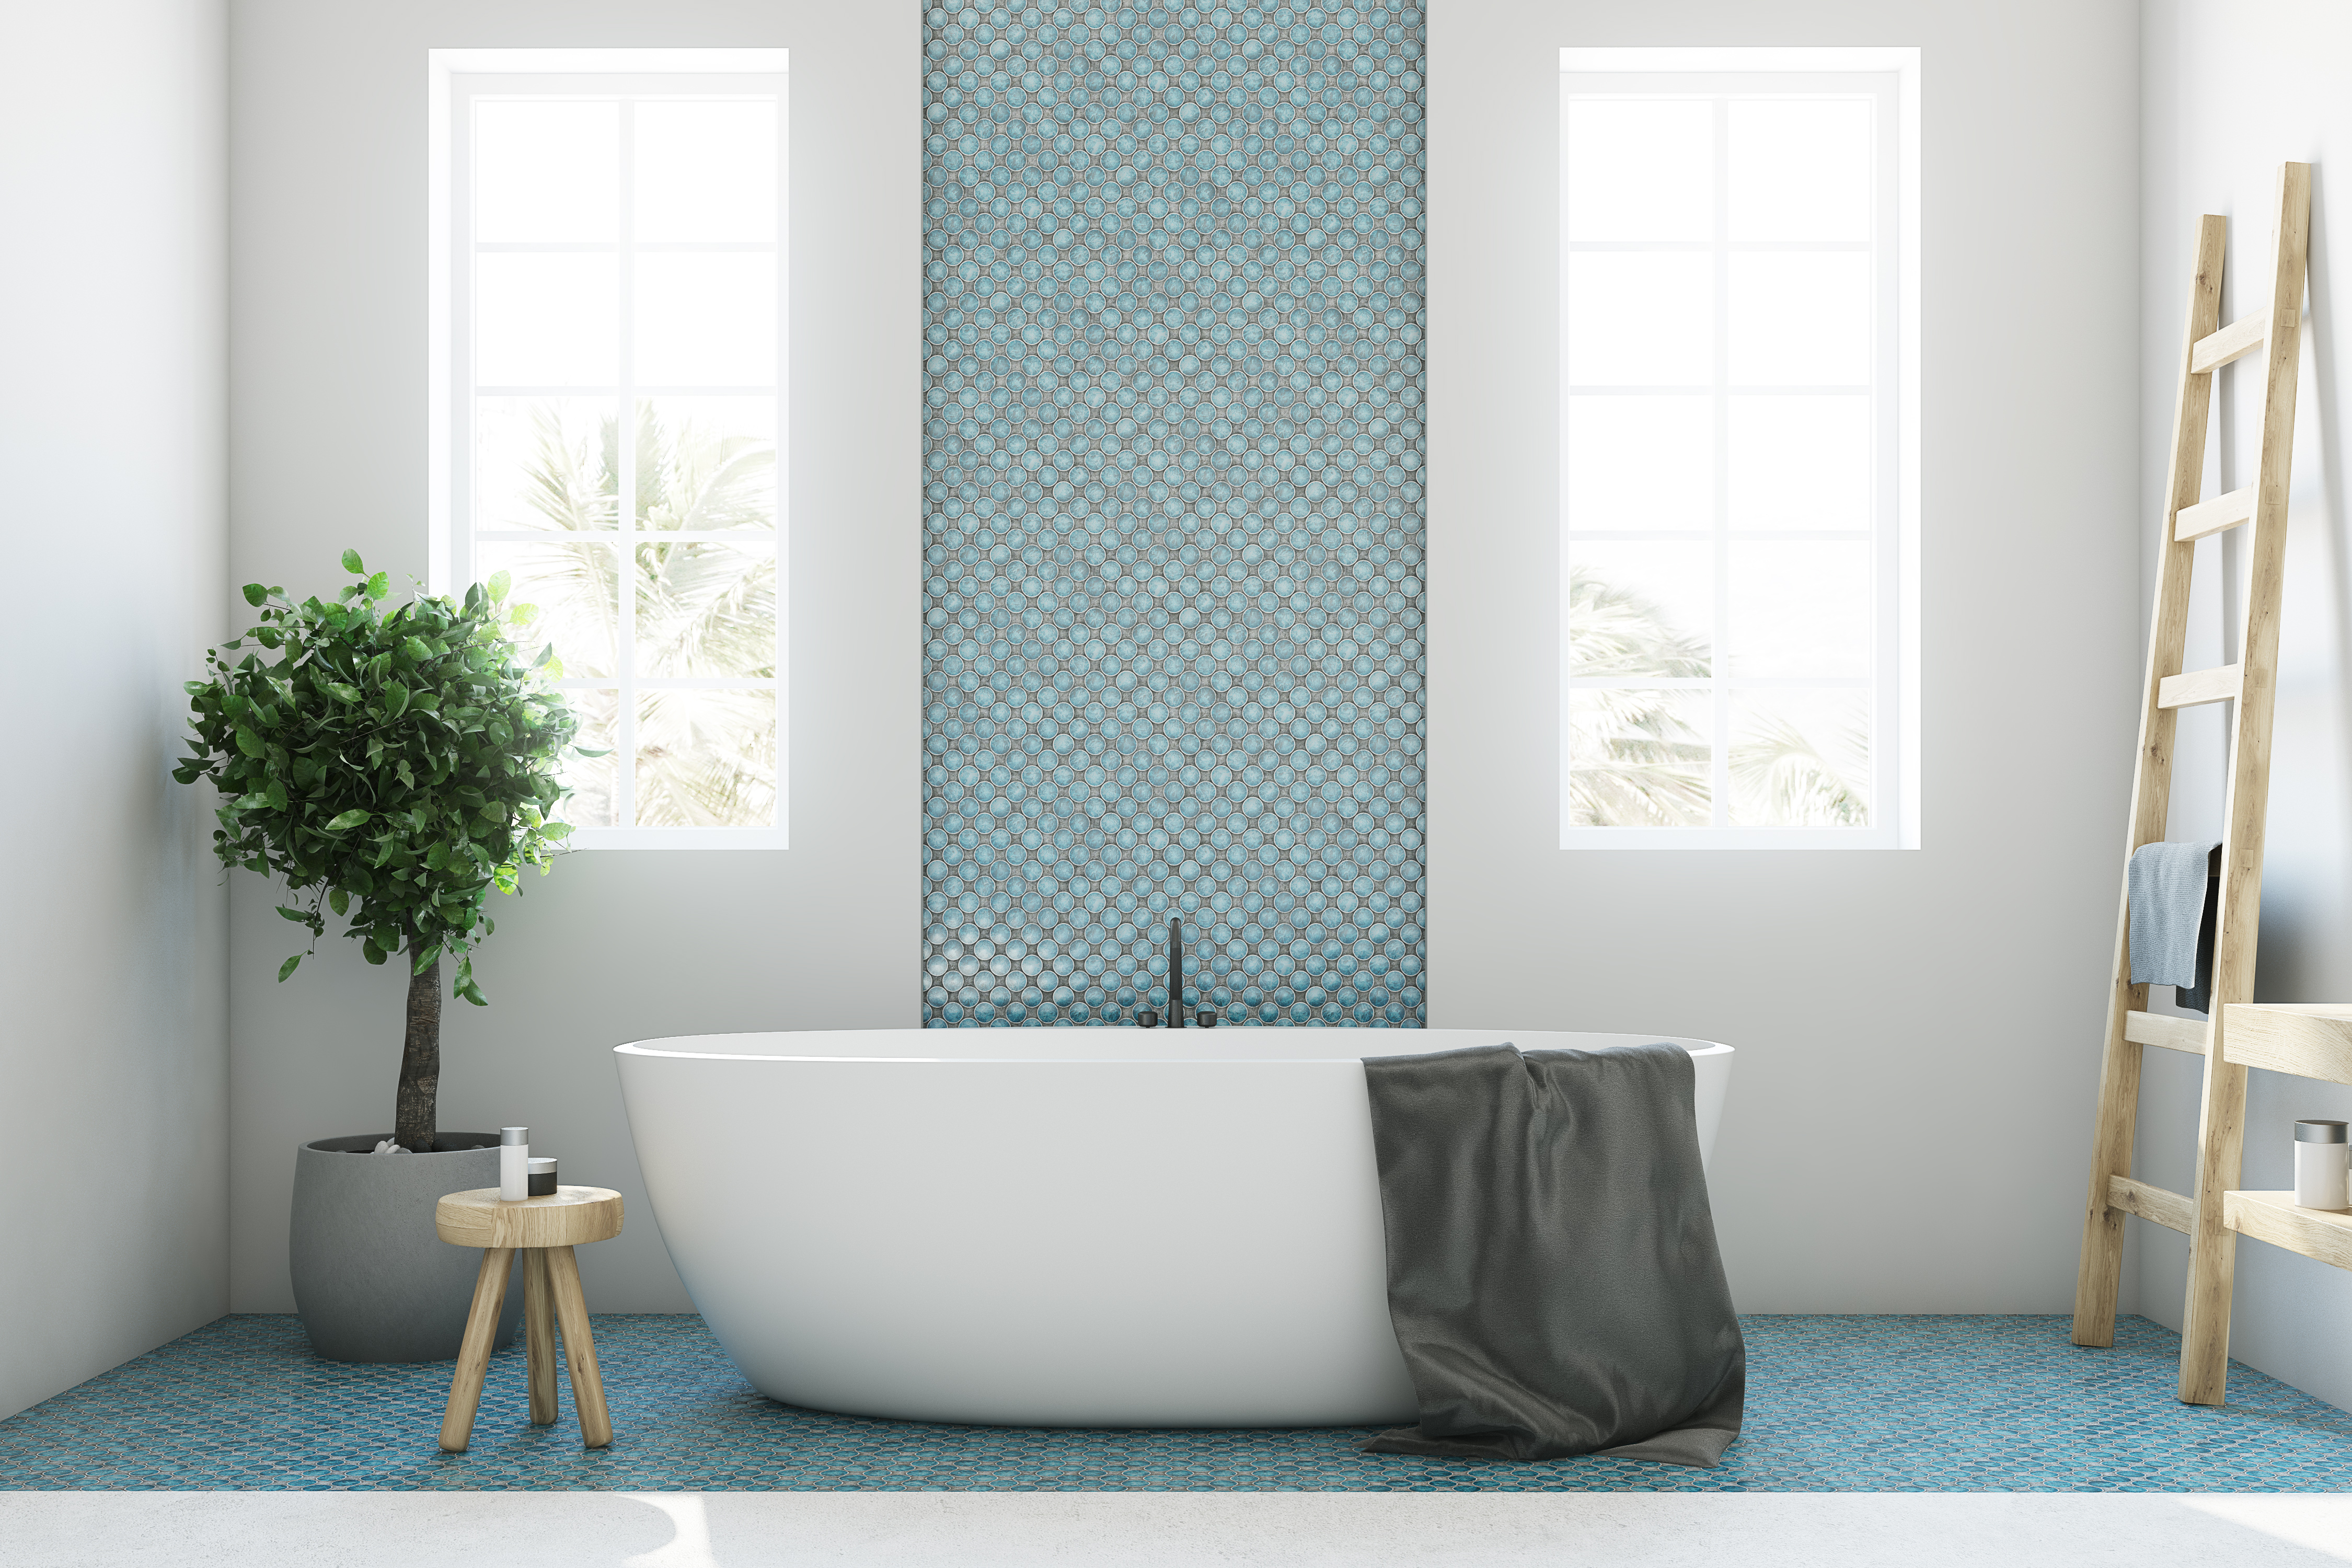 There are many types of bathroom tile stickers available.